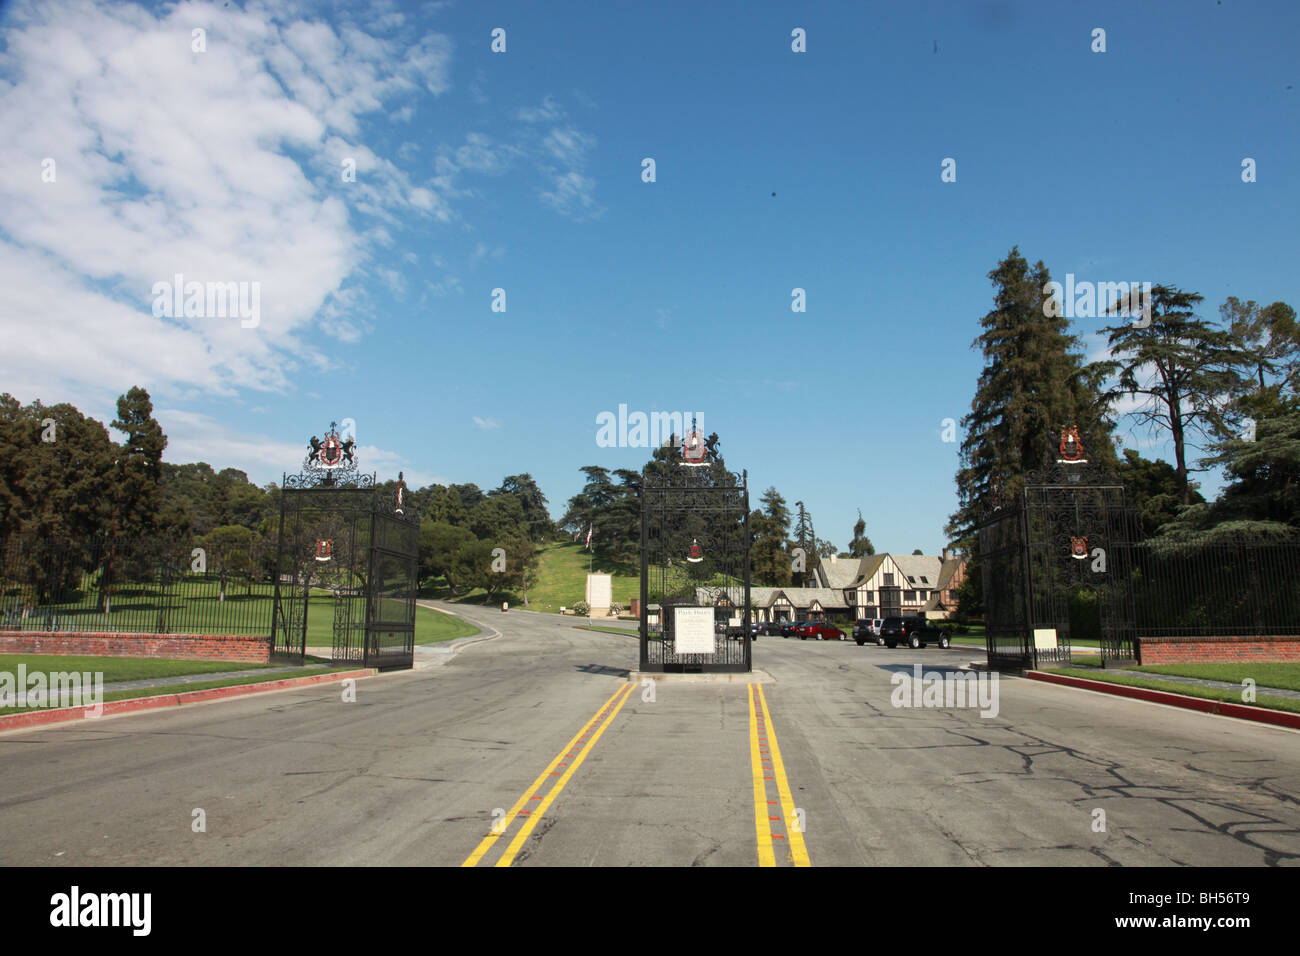 FOREST LAWN MICHAEL JACKSON TO BE LAID TO REST HERE LOS ANGELES CALIFORNIA CA USA 22 August 2009 - Stock Image